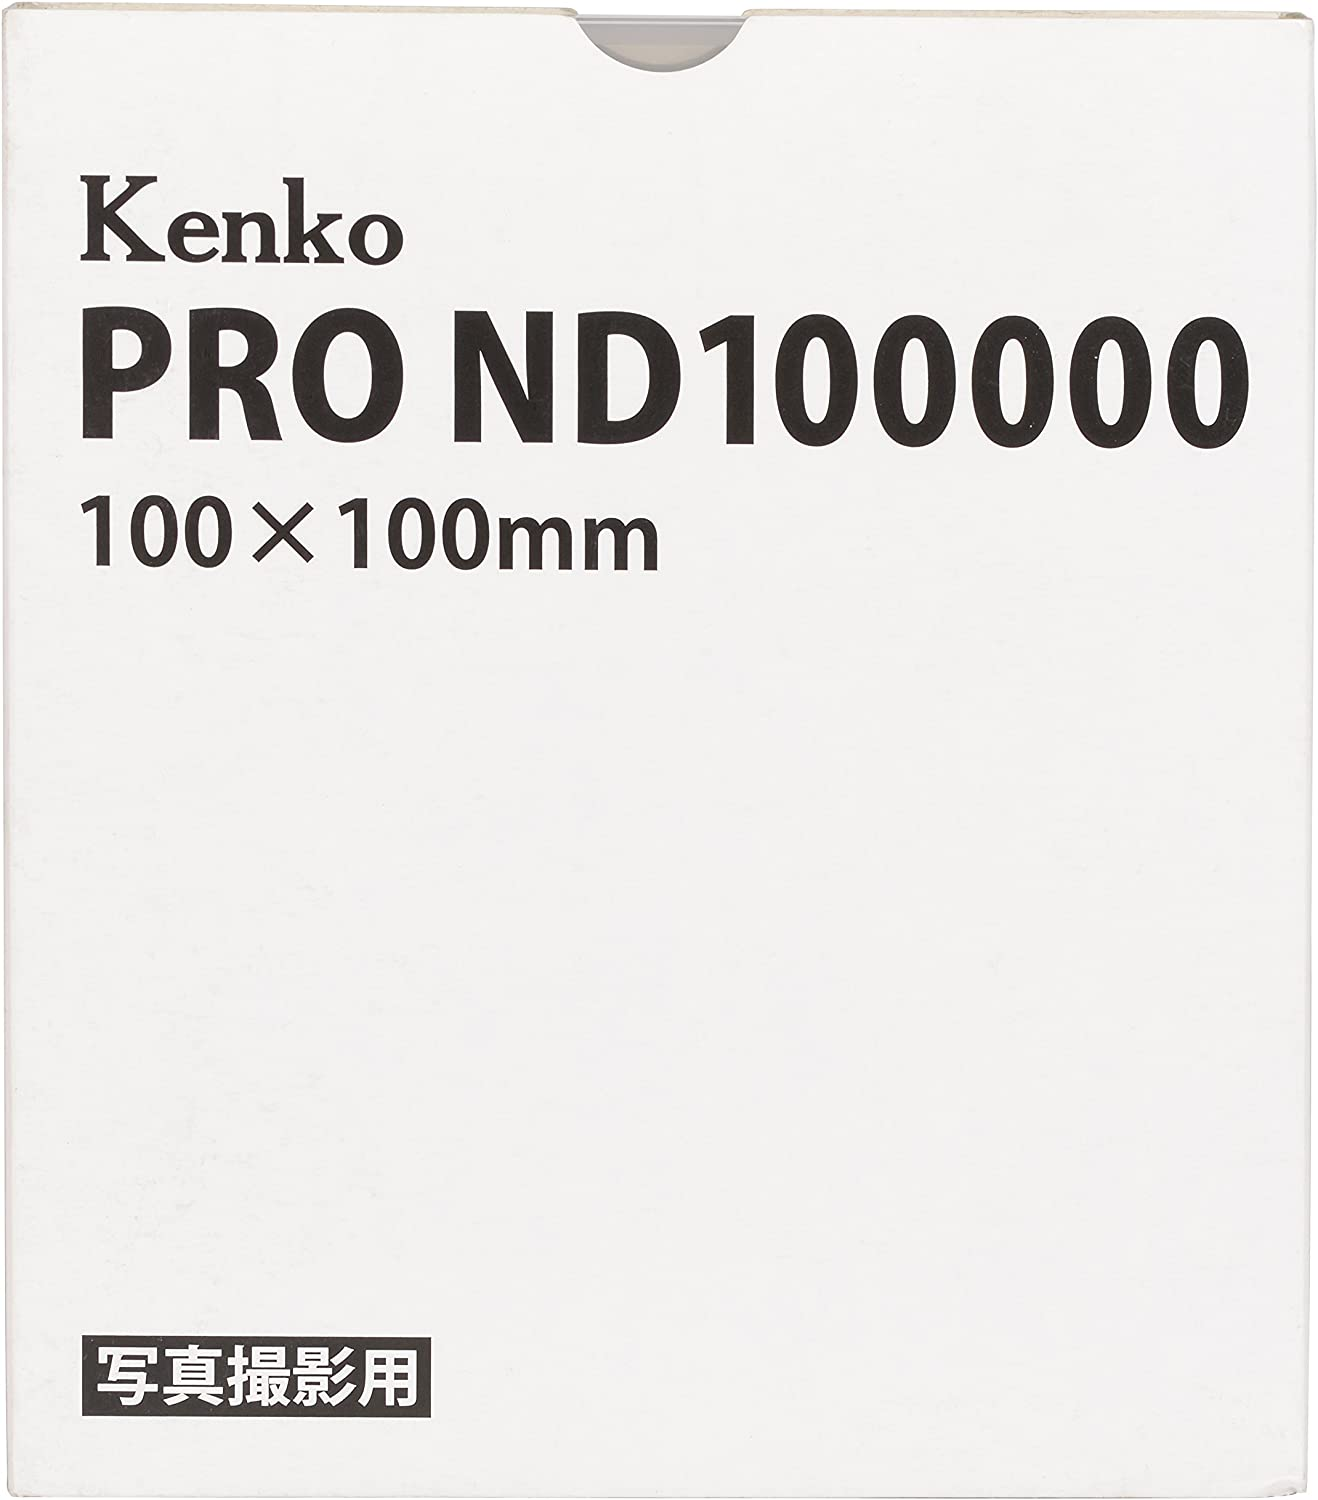 Multi-Coated Camera Lens Filters D5 Kenko 100x100mm PRO ND100000